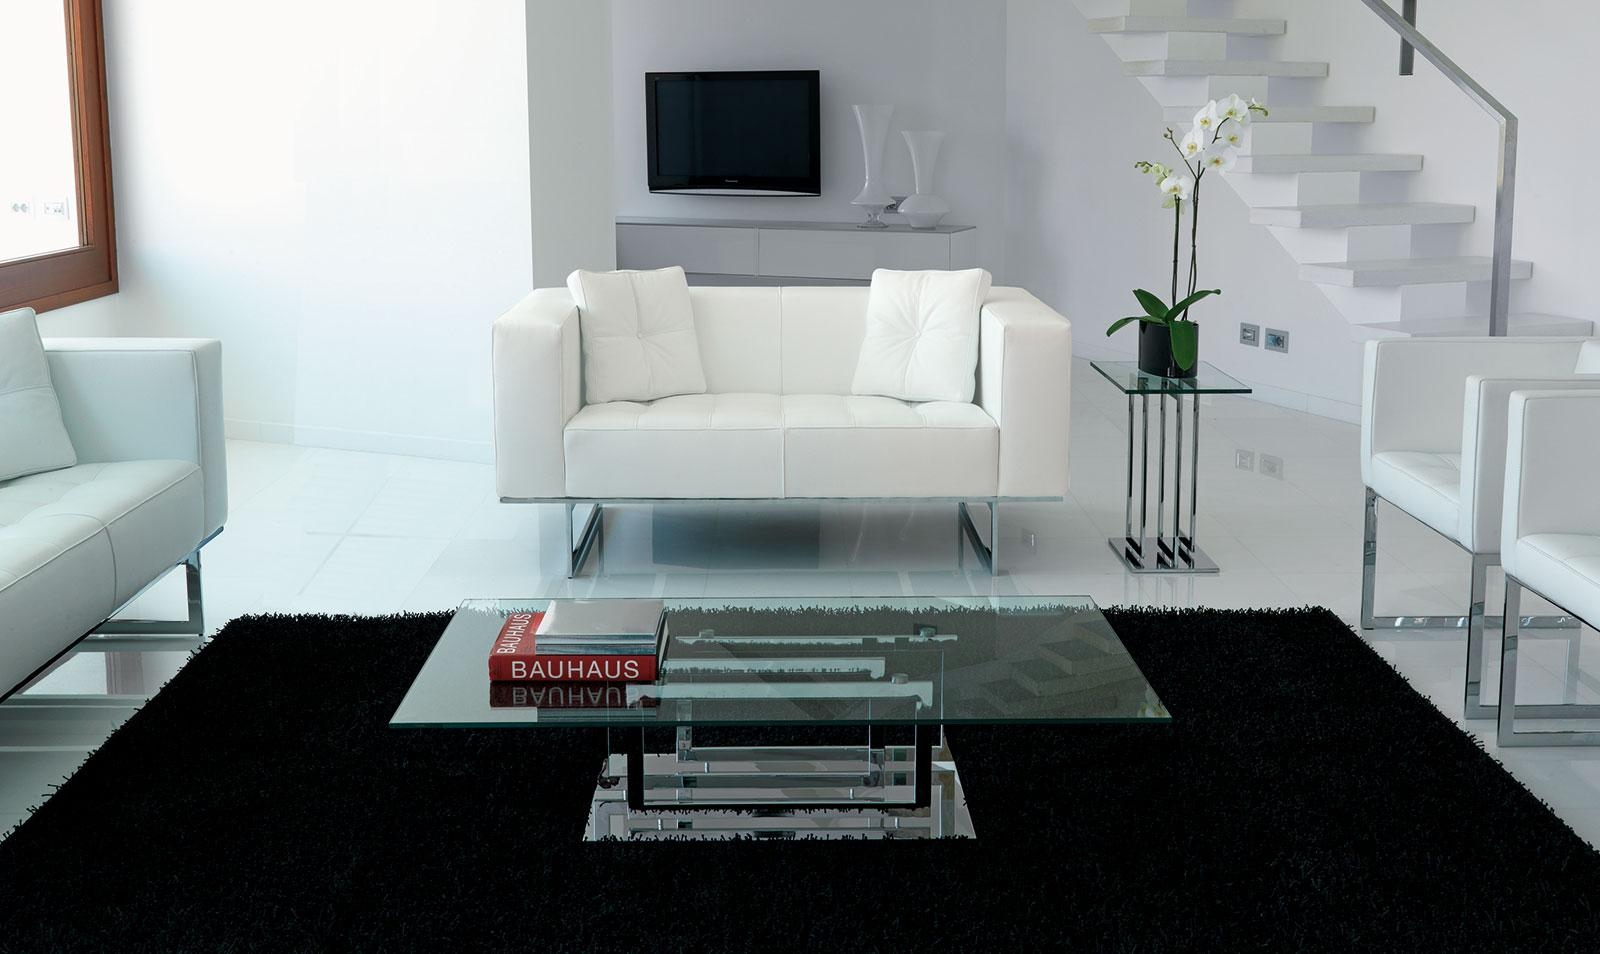 Coffee Table For Sale Legs Decor Glass Ideas Sale Unusual Furniture Stores  Shops Choice Design Delivery